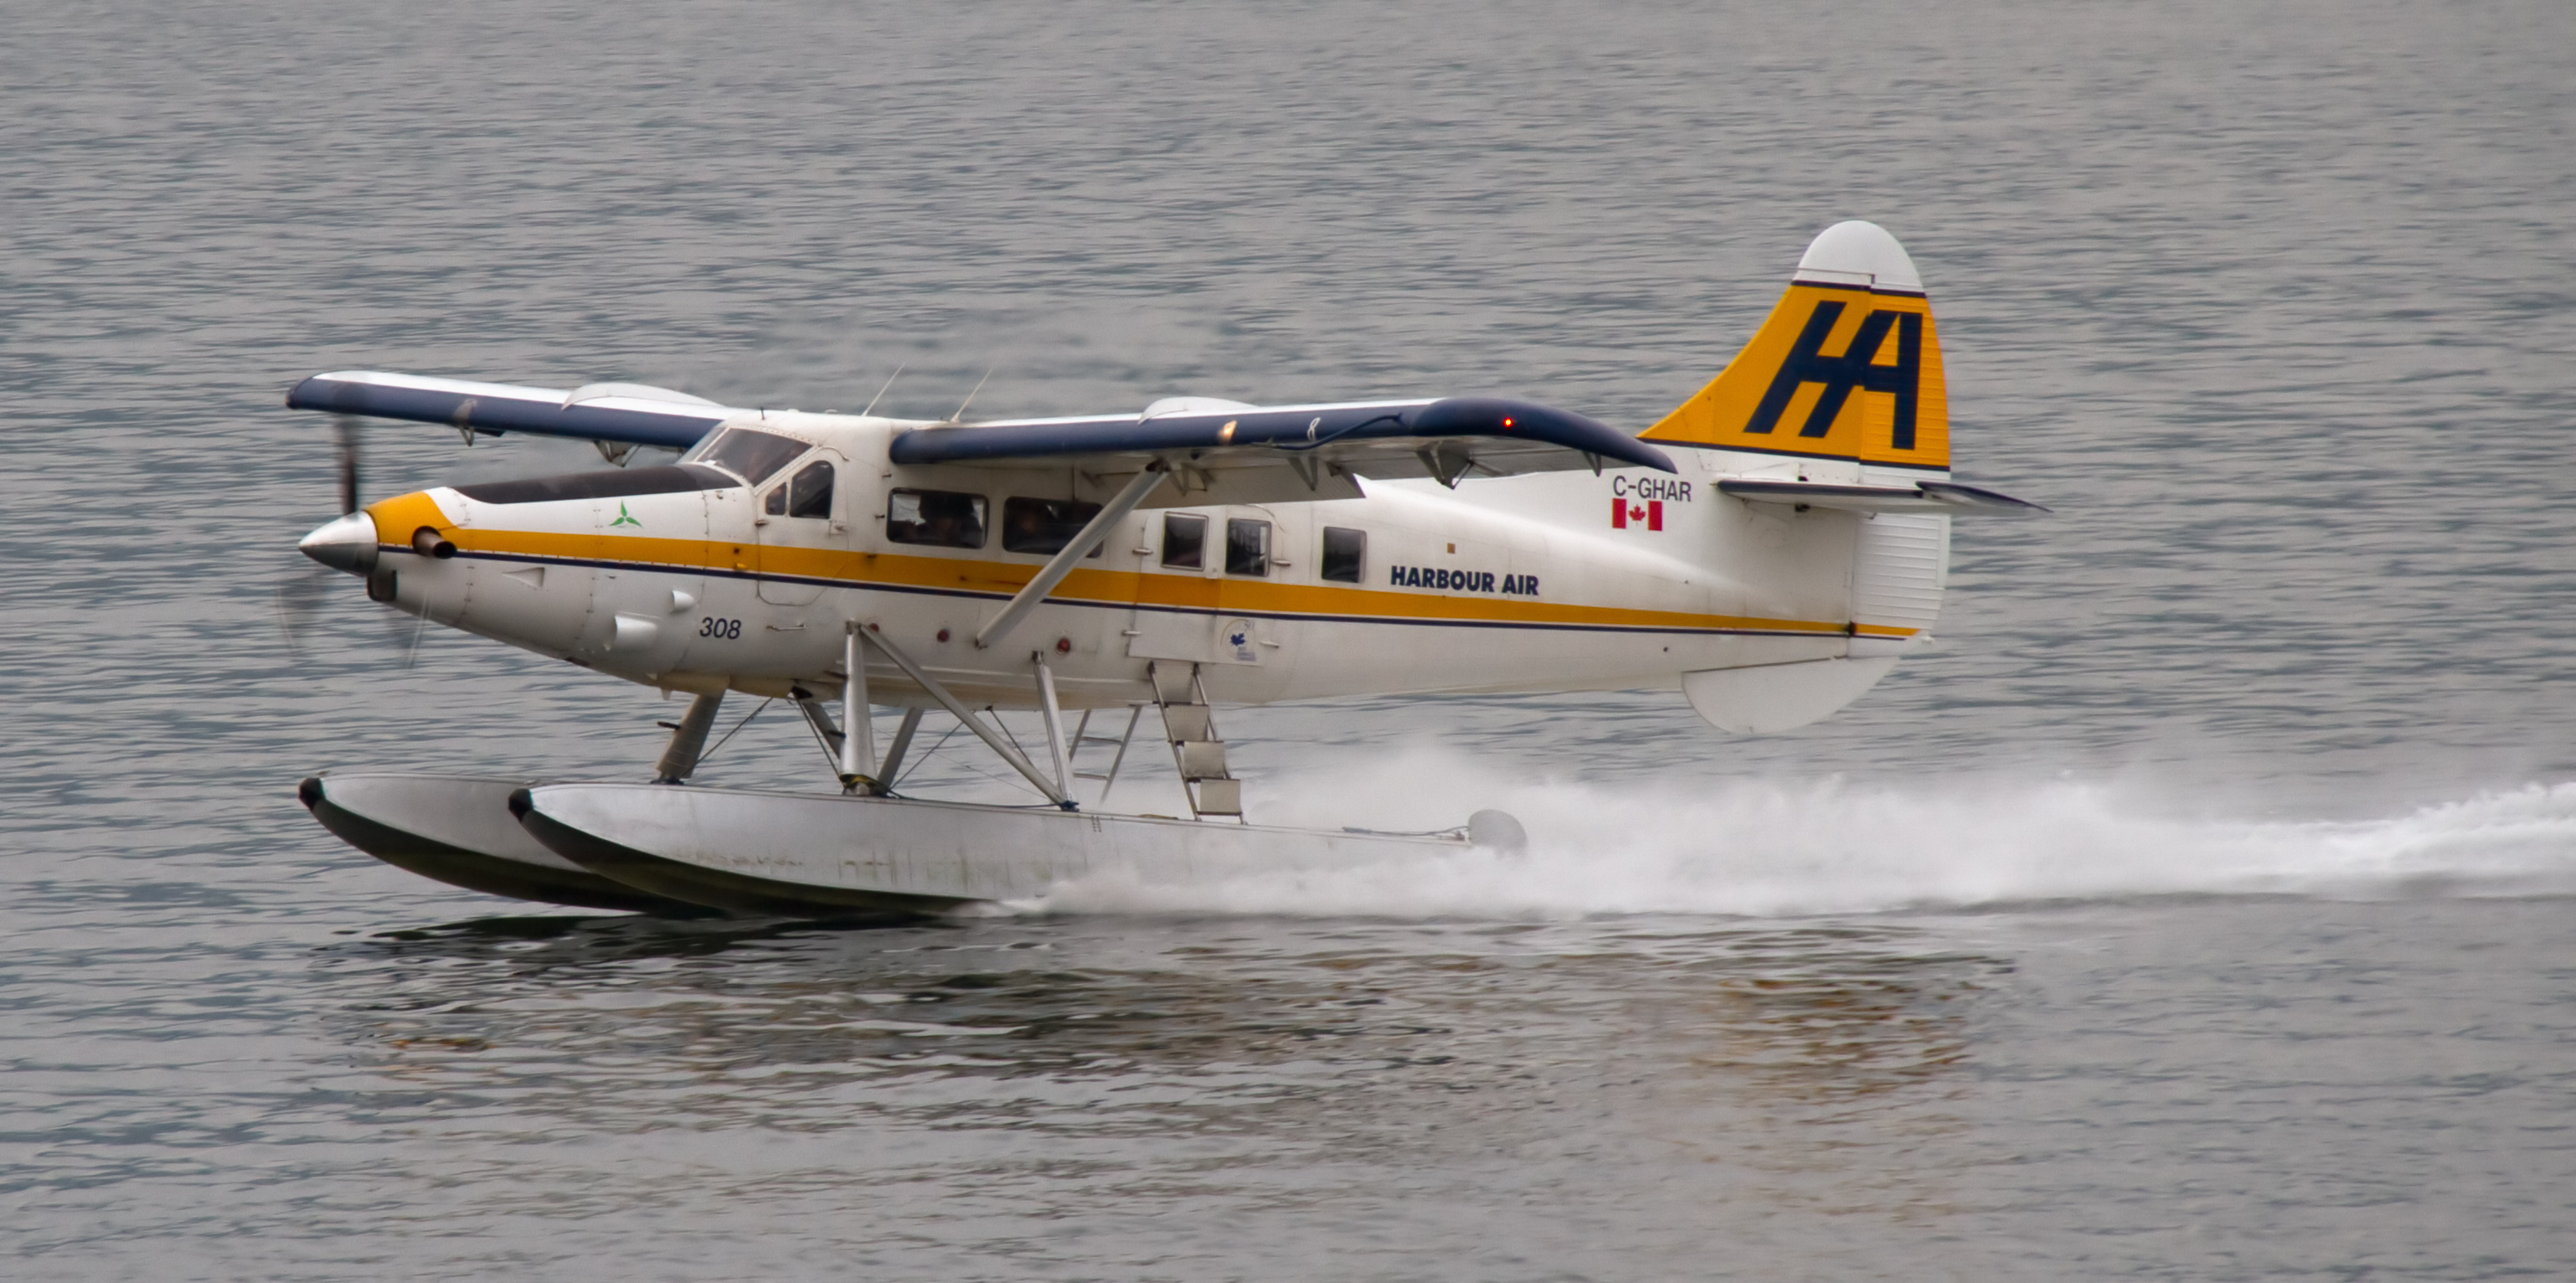 https://upload.wikimedia.org/wikipedia/commons/2/2e/Harbour_Air_De_Havilland_Canada_DHC-3T_Vazar_Turbine_Otter_C-GHAR_3_(8027547591).jpg